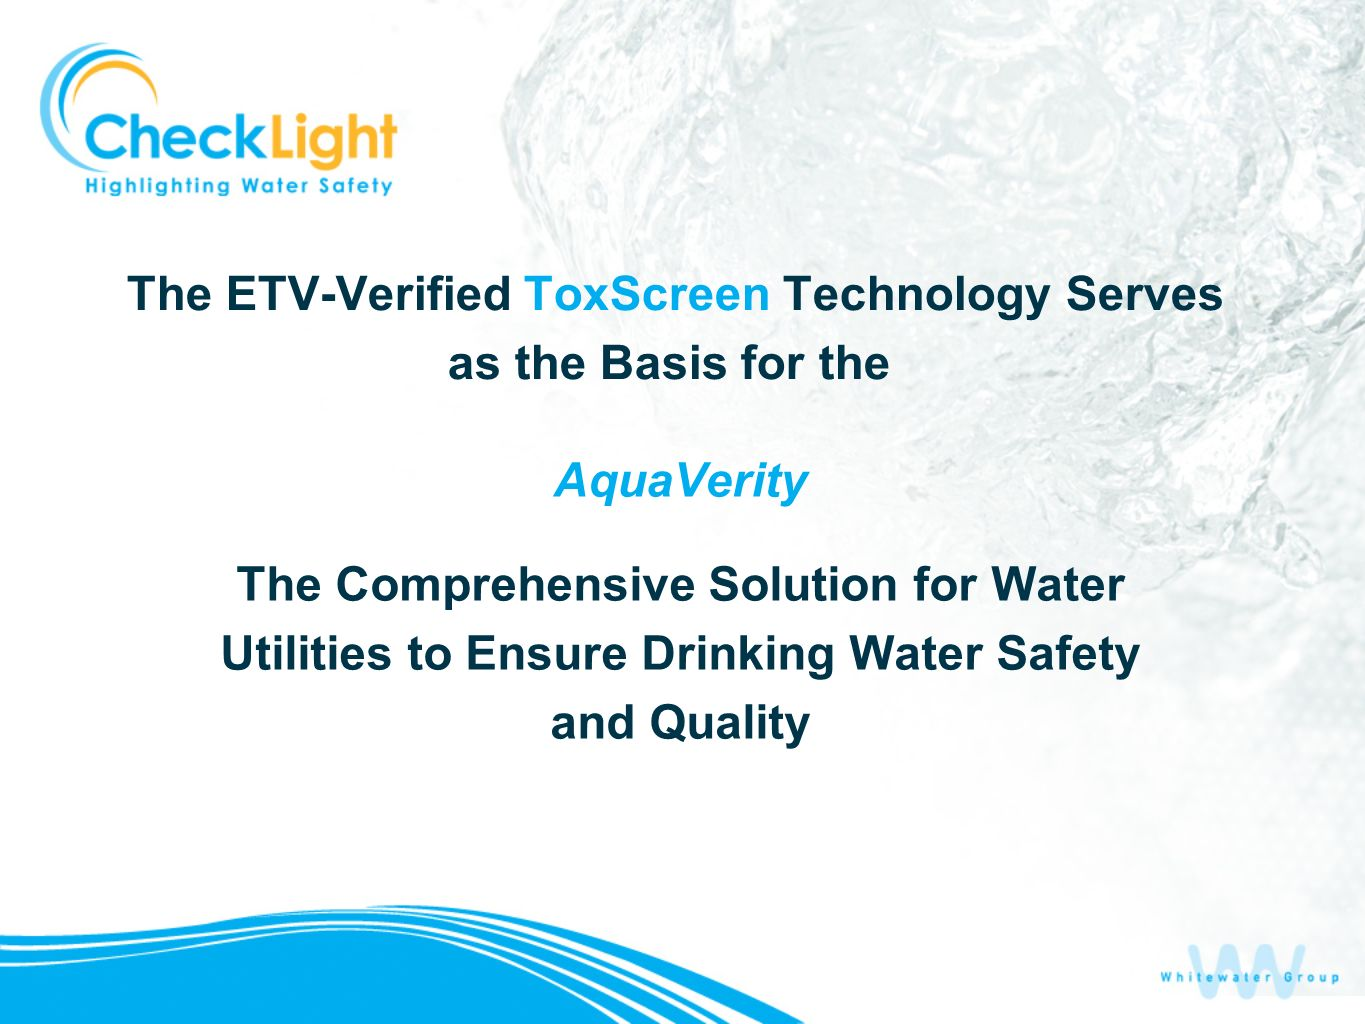 The ETV-Verified ToxScreen Technology Serves as the Basis for the